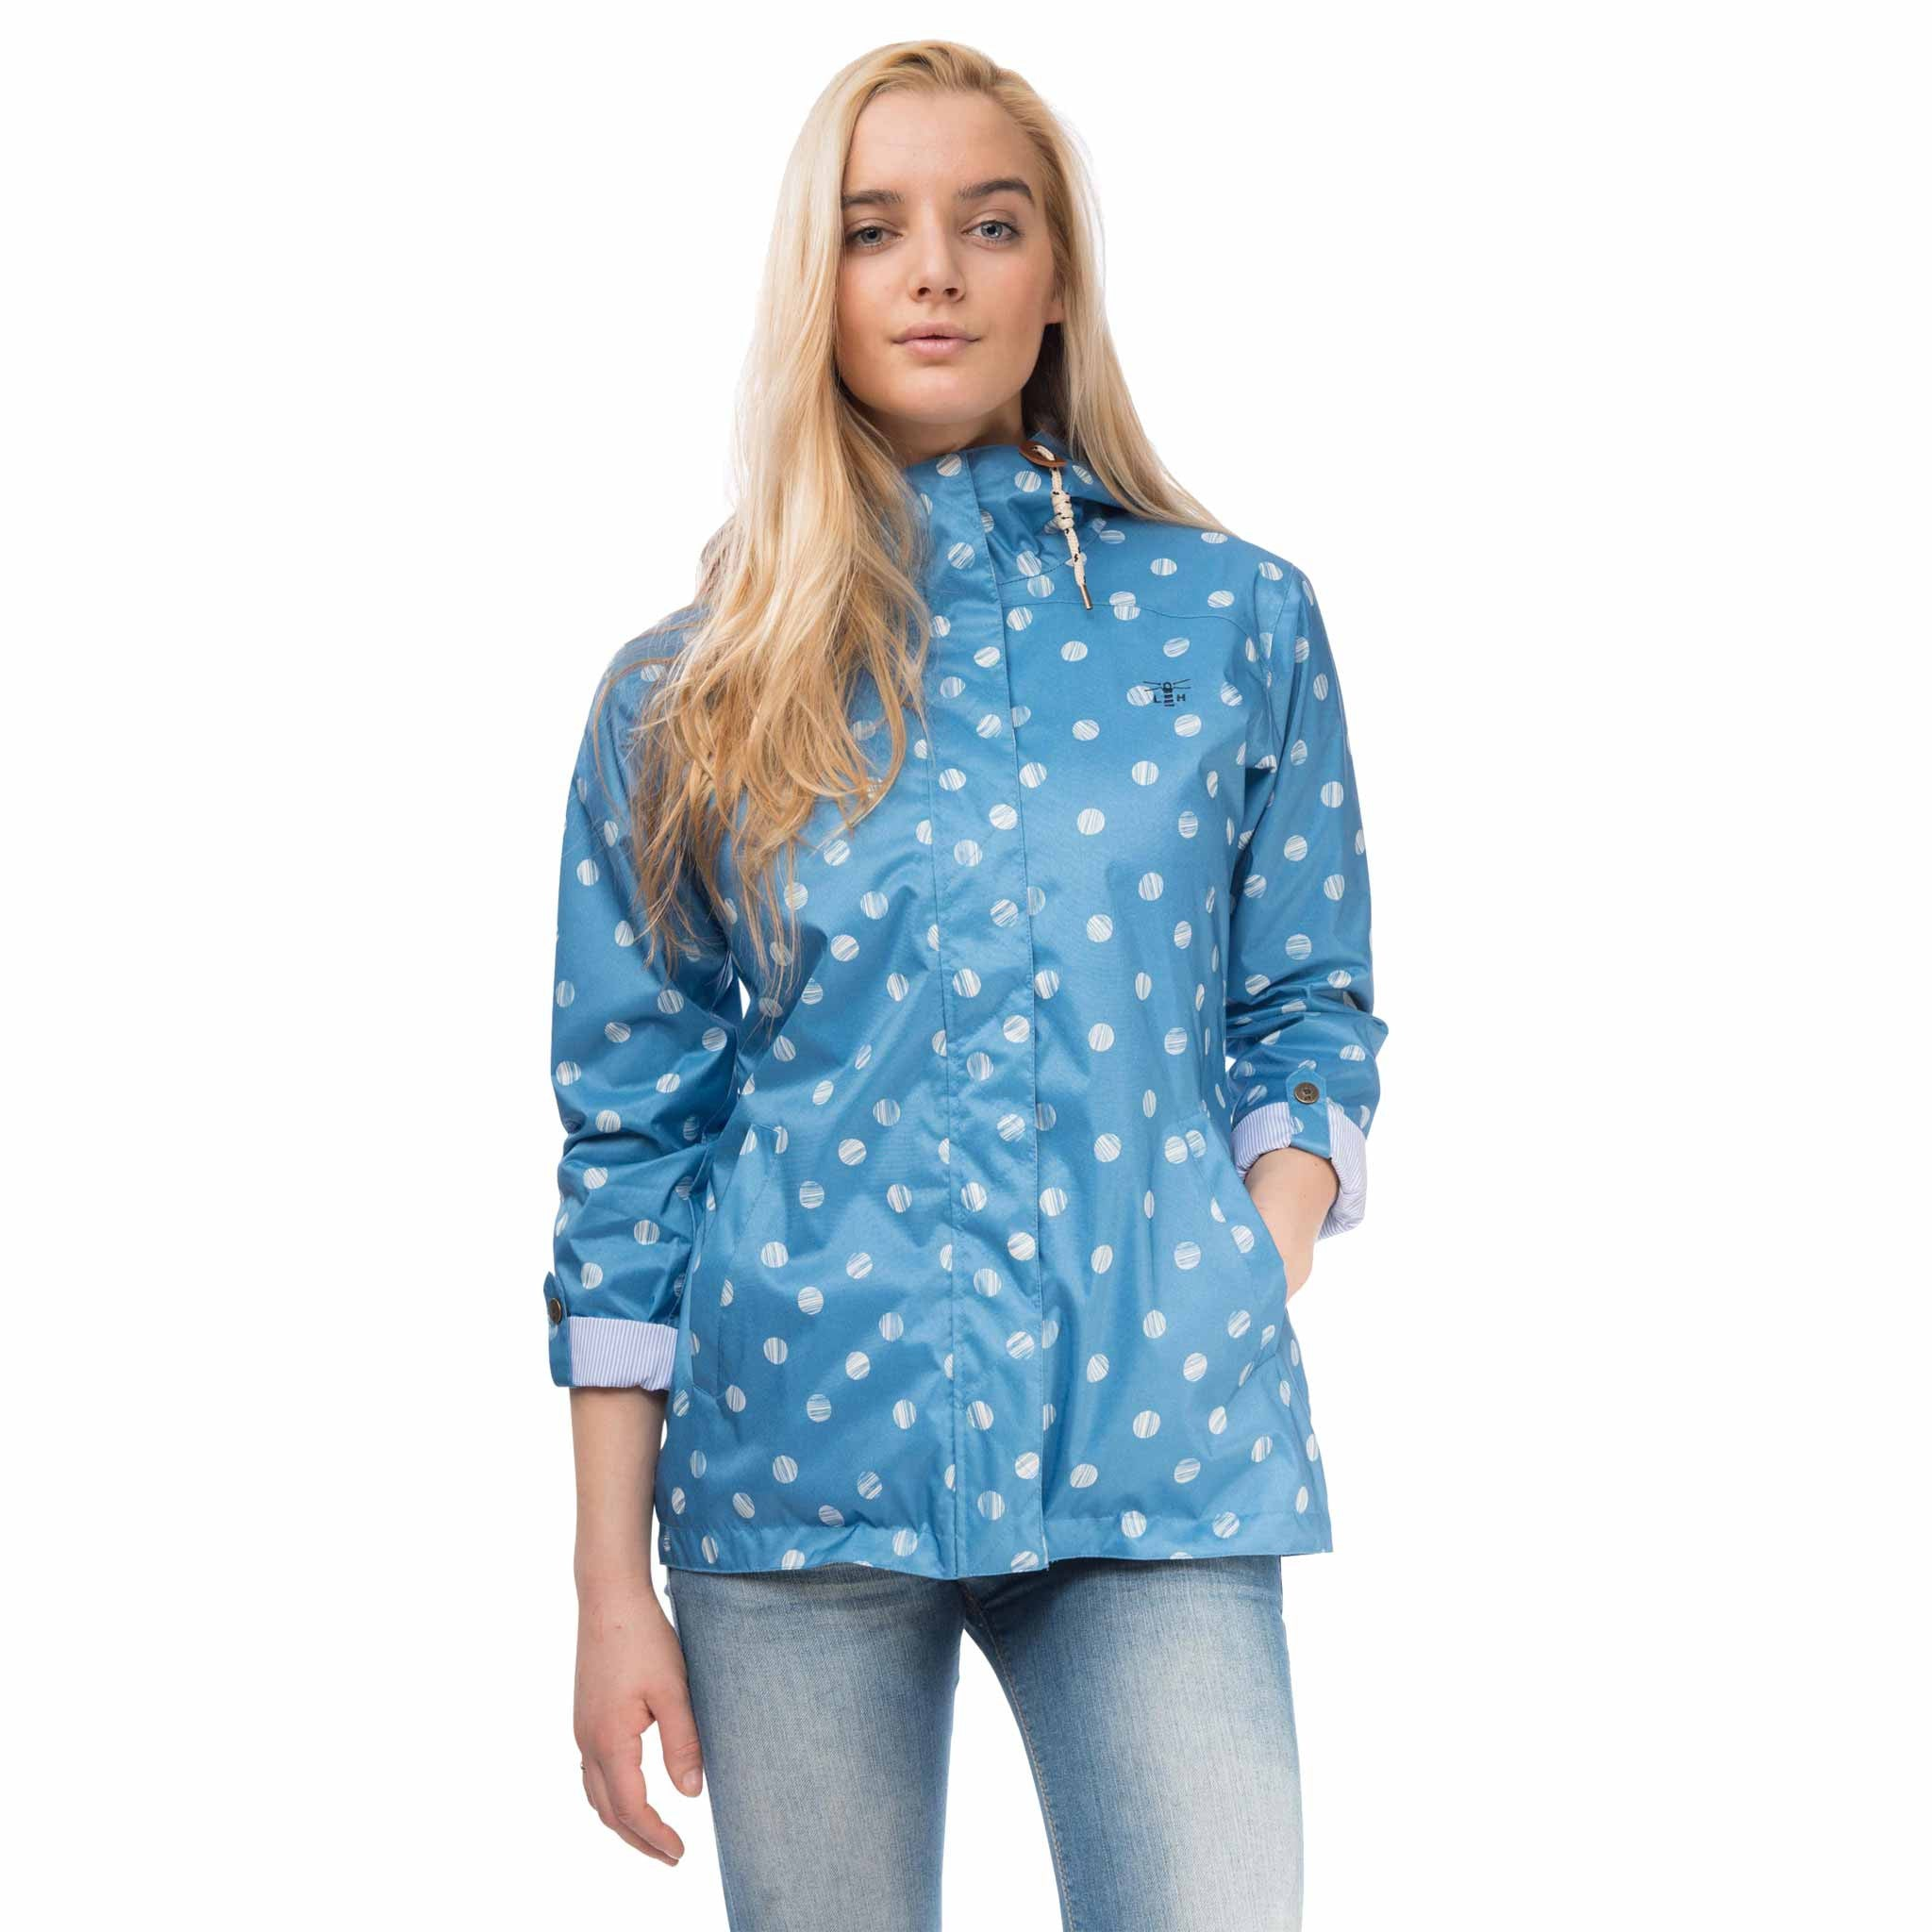 Bluejay Womens Waterproof Jacket in Marine Polka Dot Blue, Modelled Front View | Lighthouse